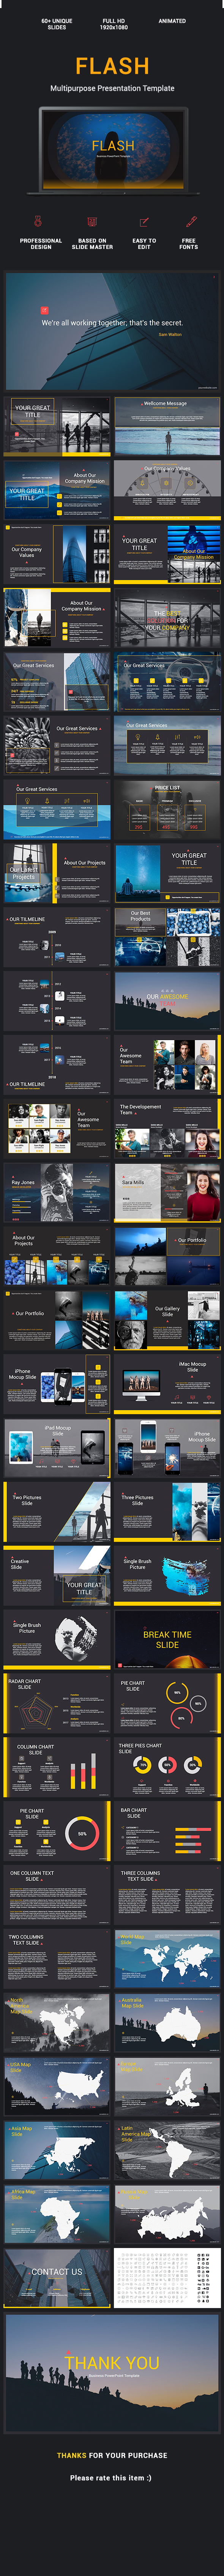 flash - business ppt templateopen-mind_design | graphicriver, Powerpoint templates